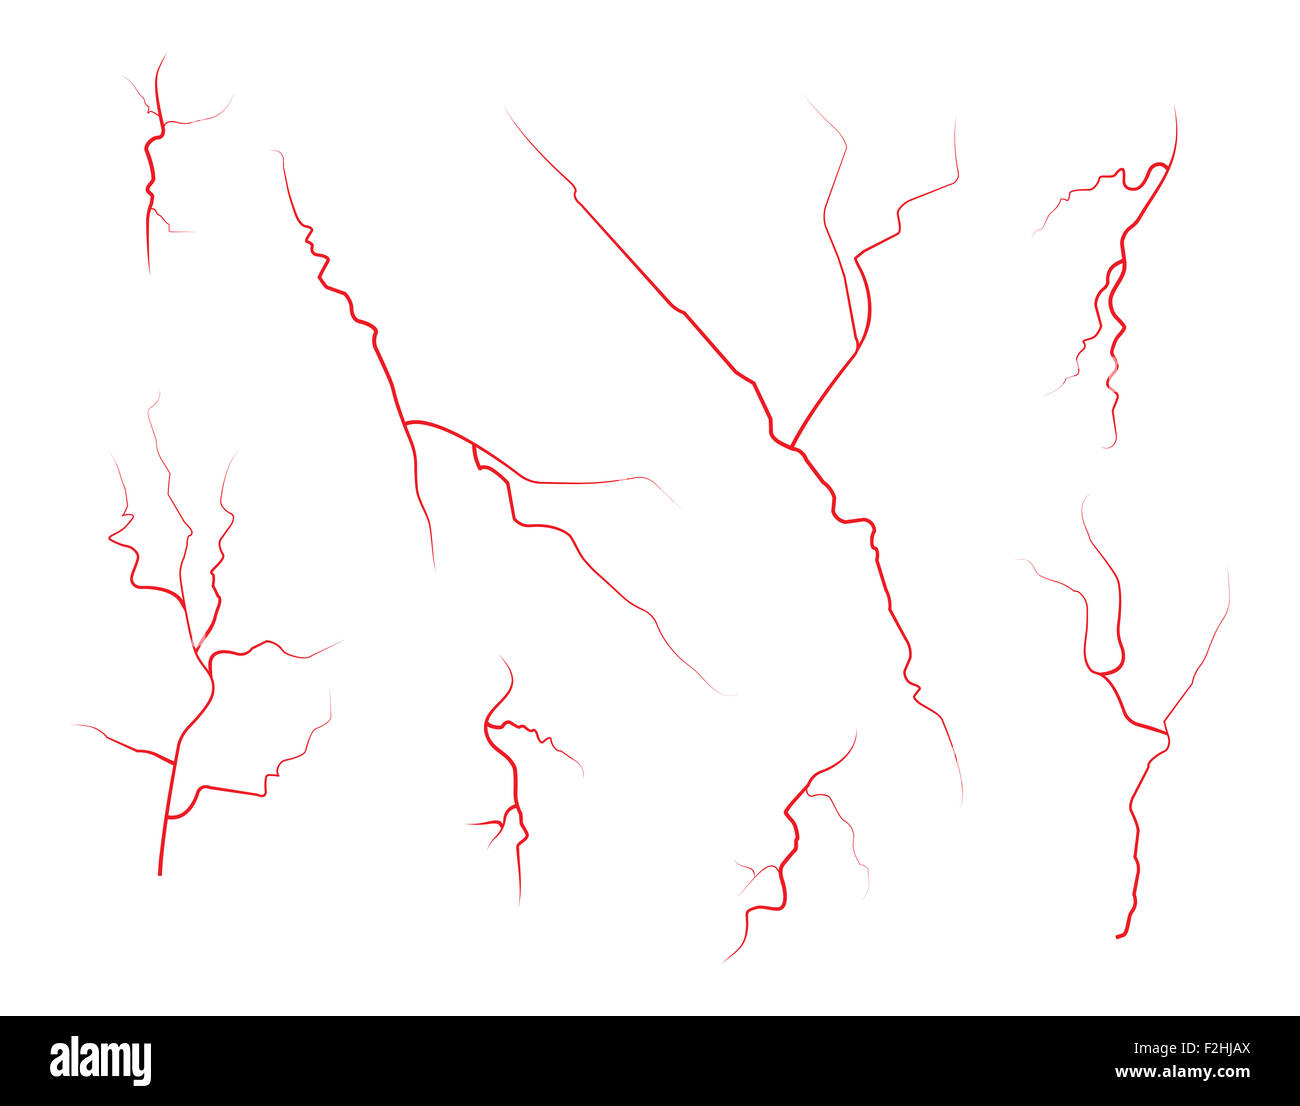 Set of human eye veins, red blood vessels, blood system.  Vector illustration isolated on white background - Stock Image